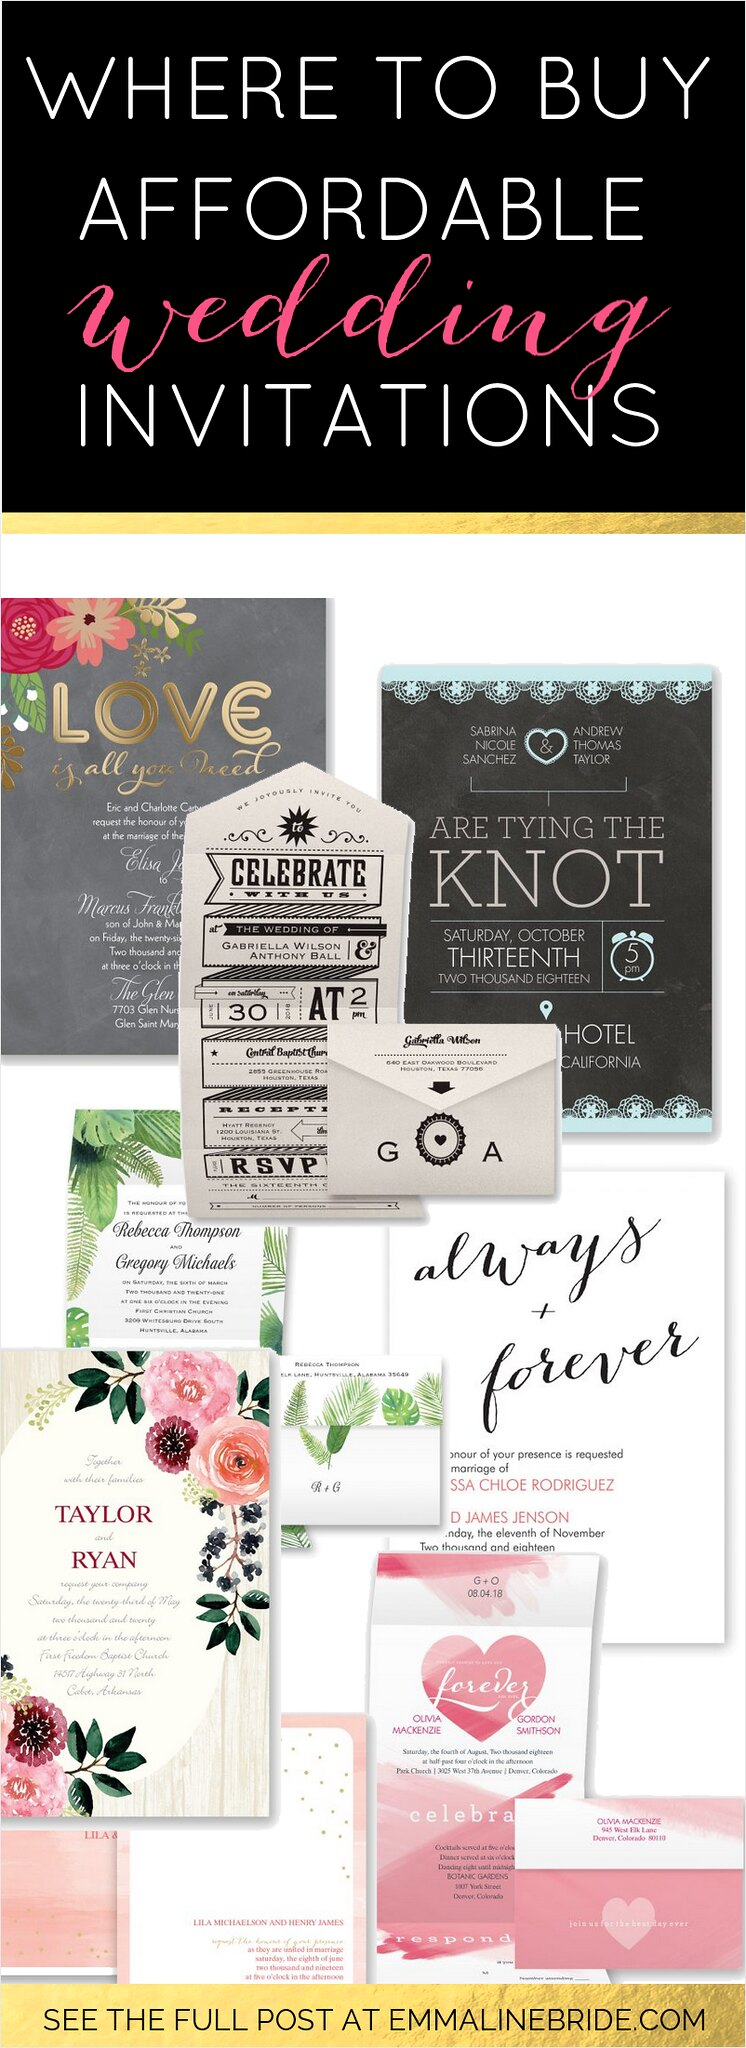 Affordable All One Wedding Invitations